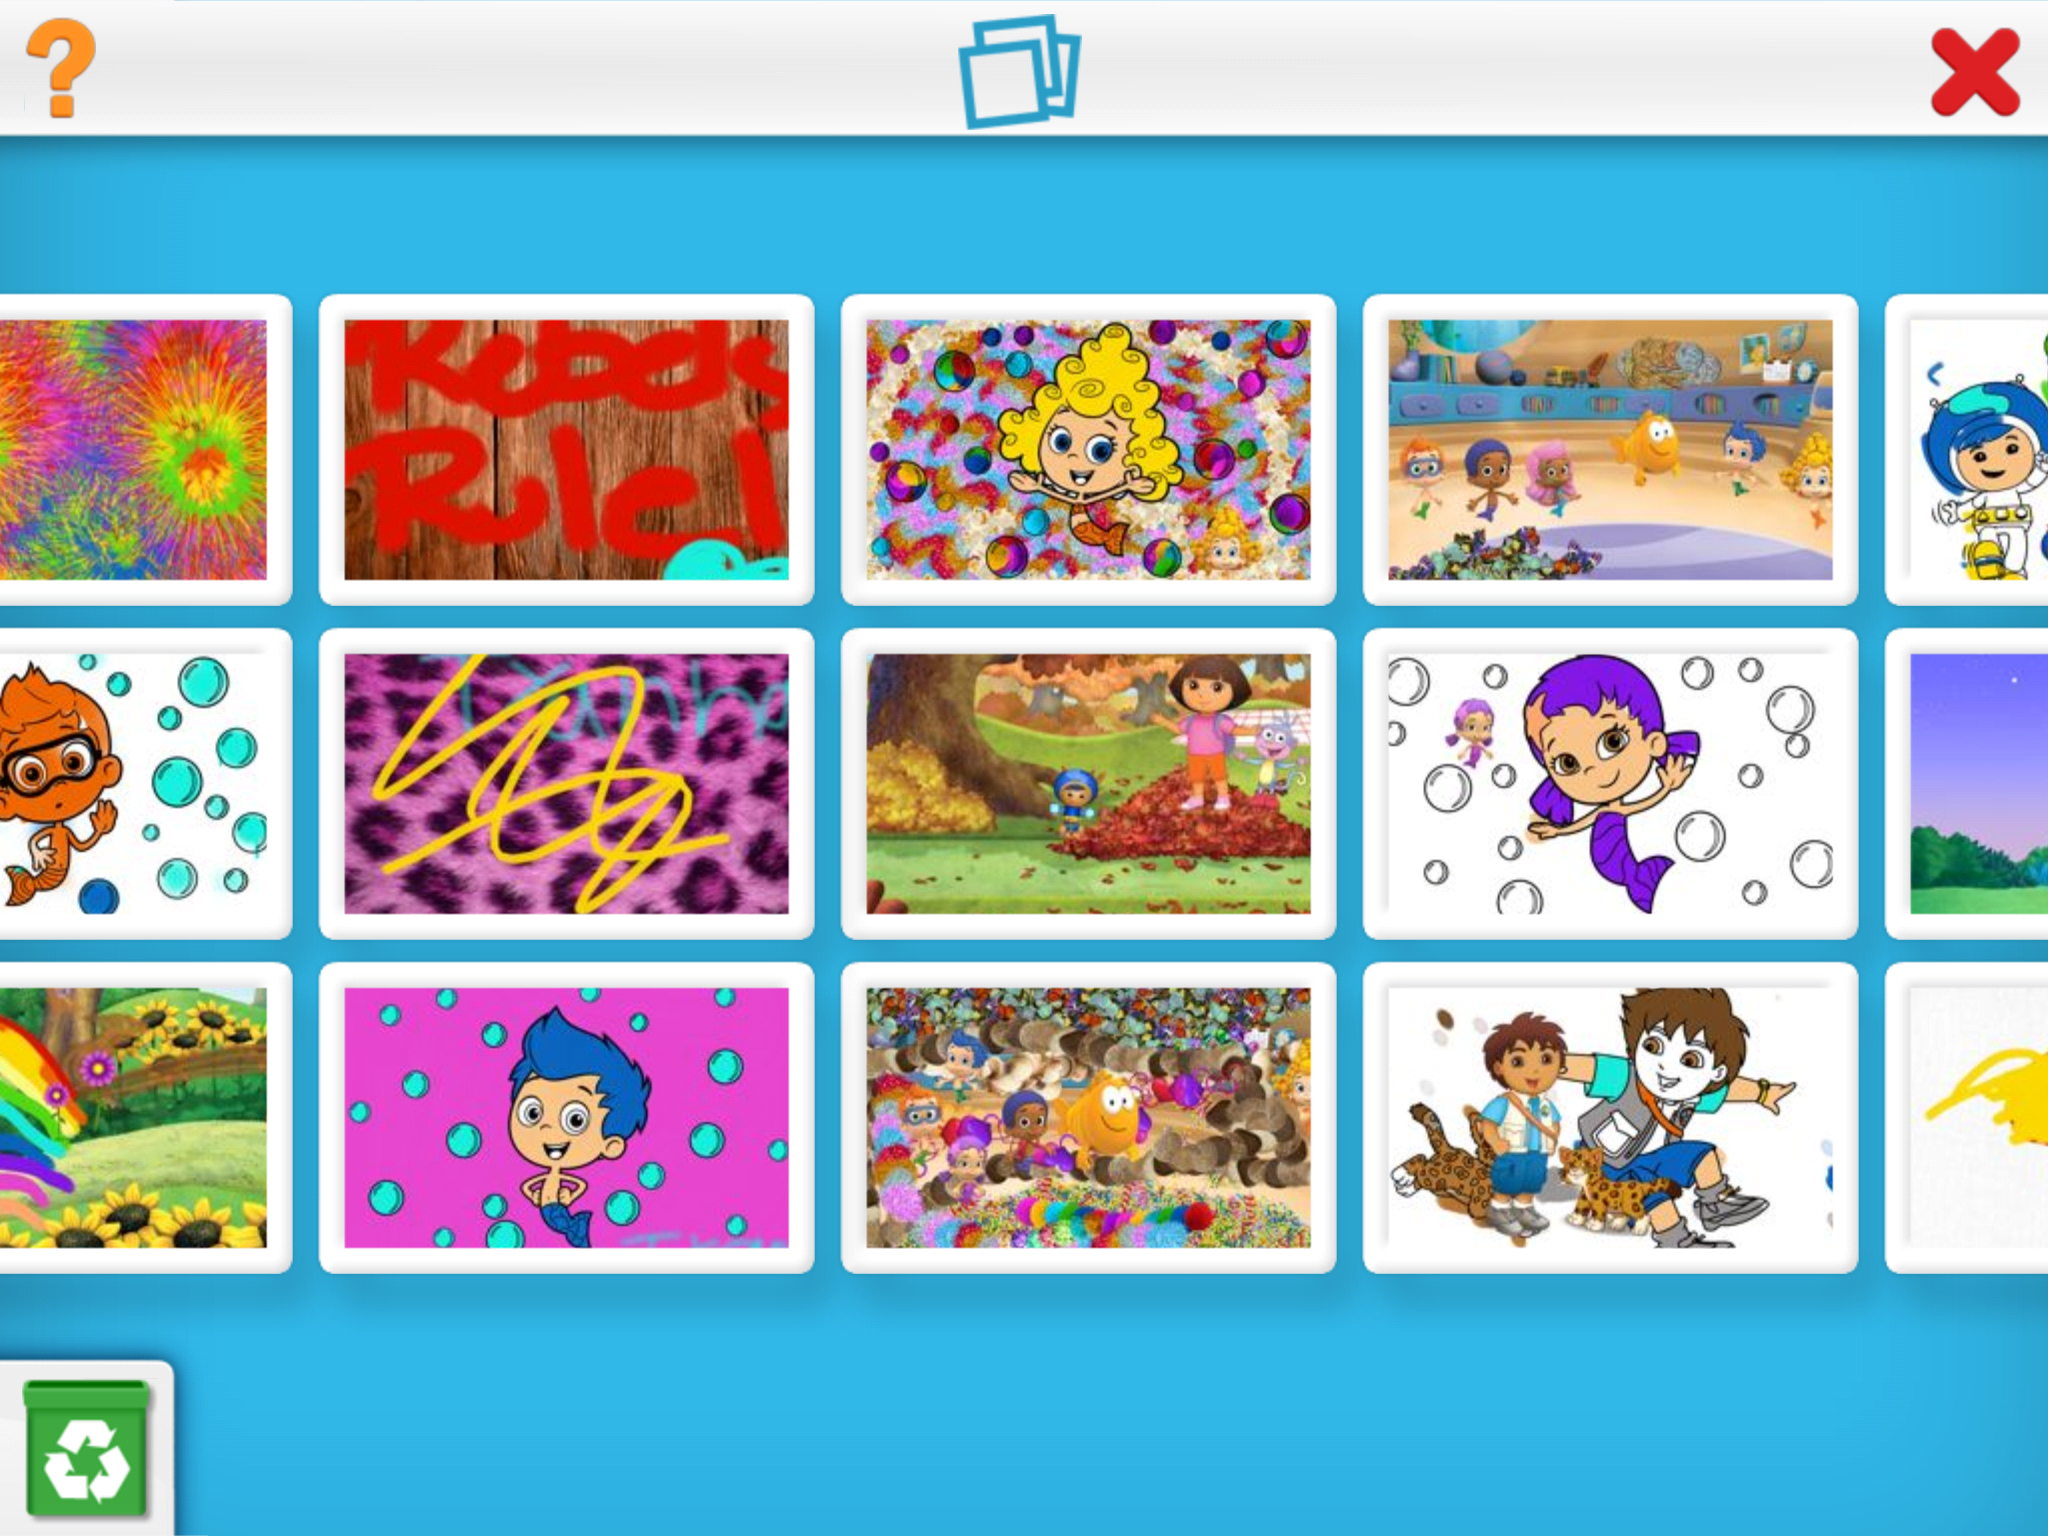 Nick Jr. Draw And Play App - BB Product Reviews